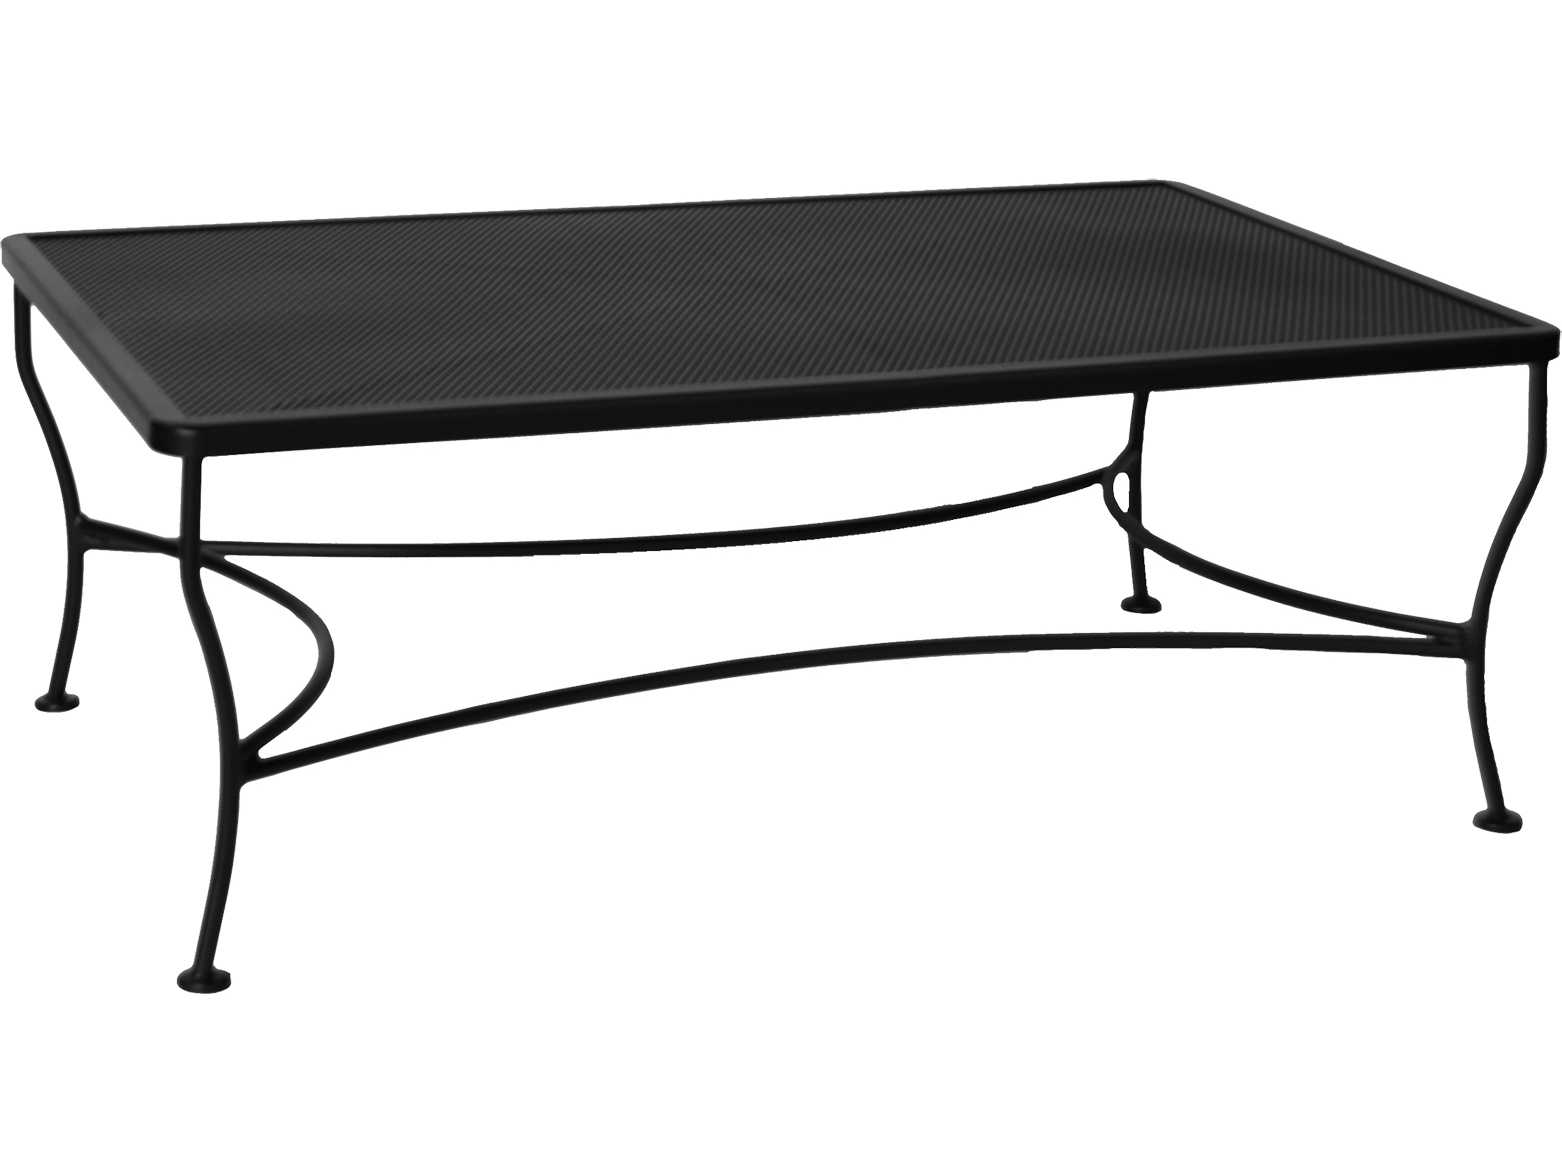 Ow Lee Mesh Wrought Iron 48 X 30 Rectangular Coffee Table